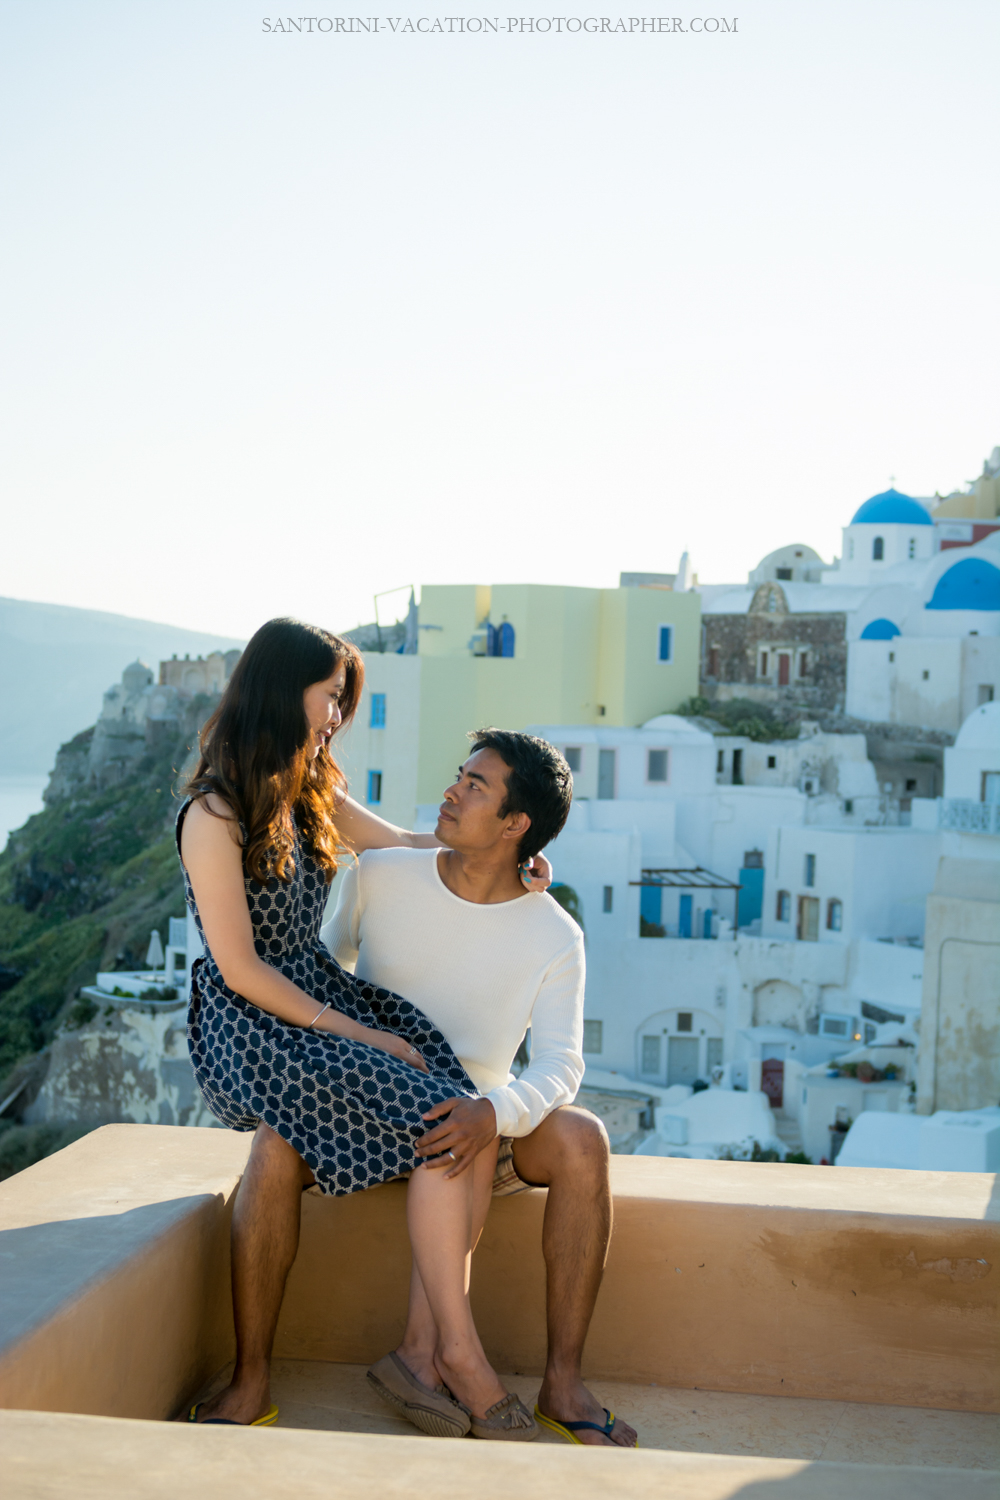 Santorini-photo-shoot-romantic-love-story-004